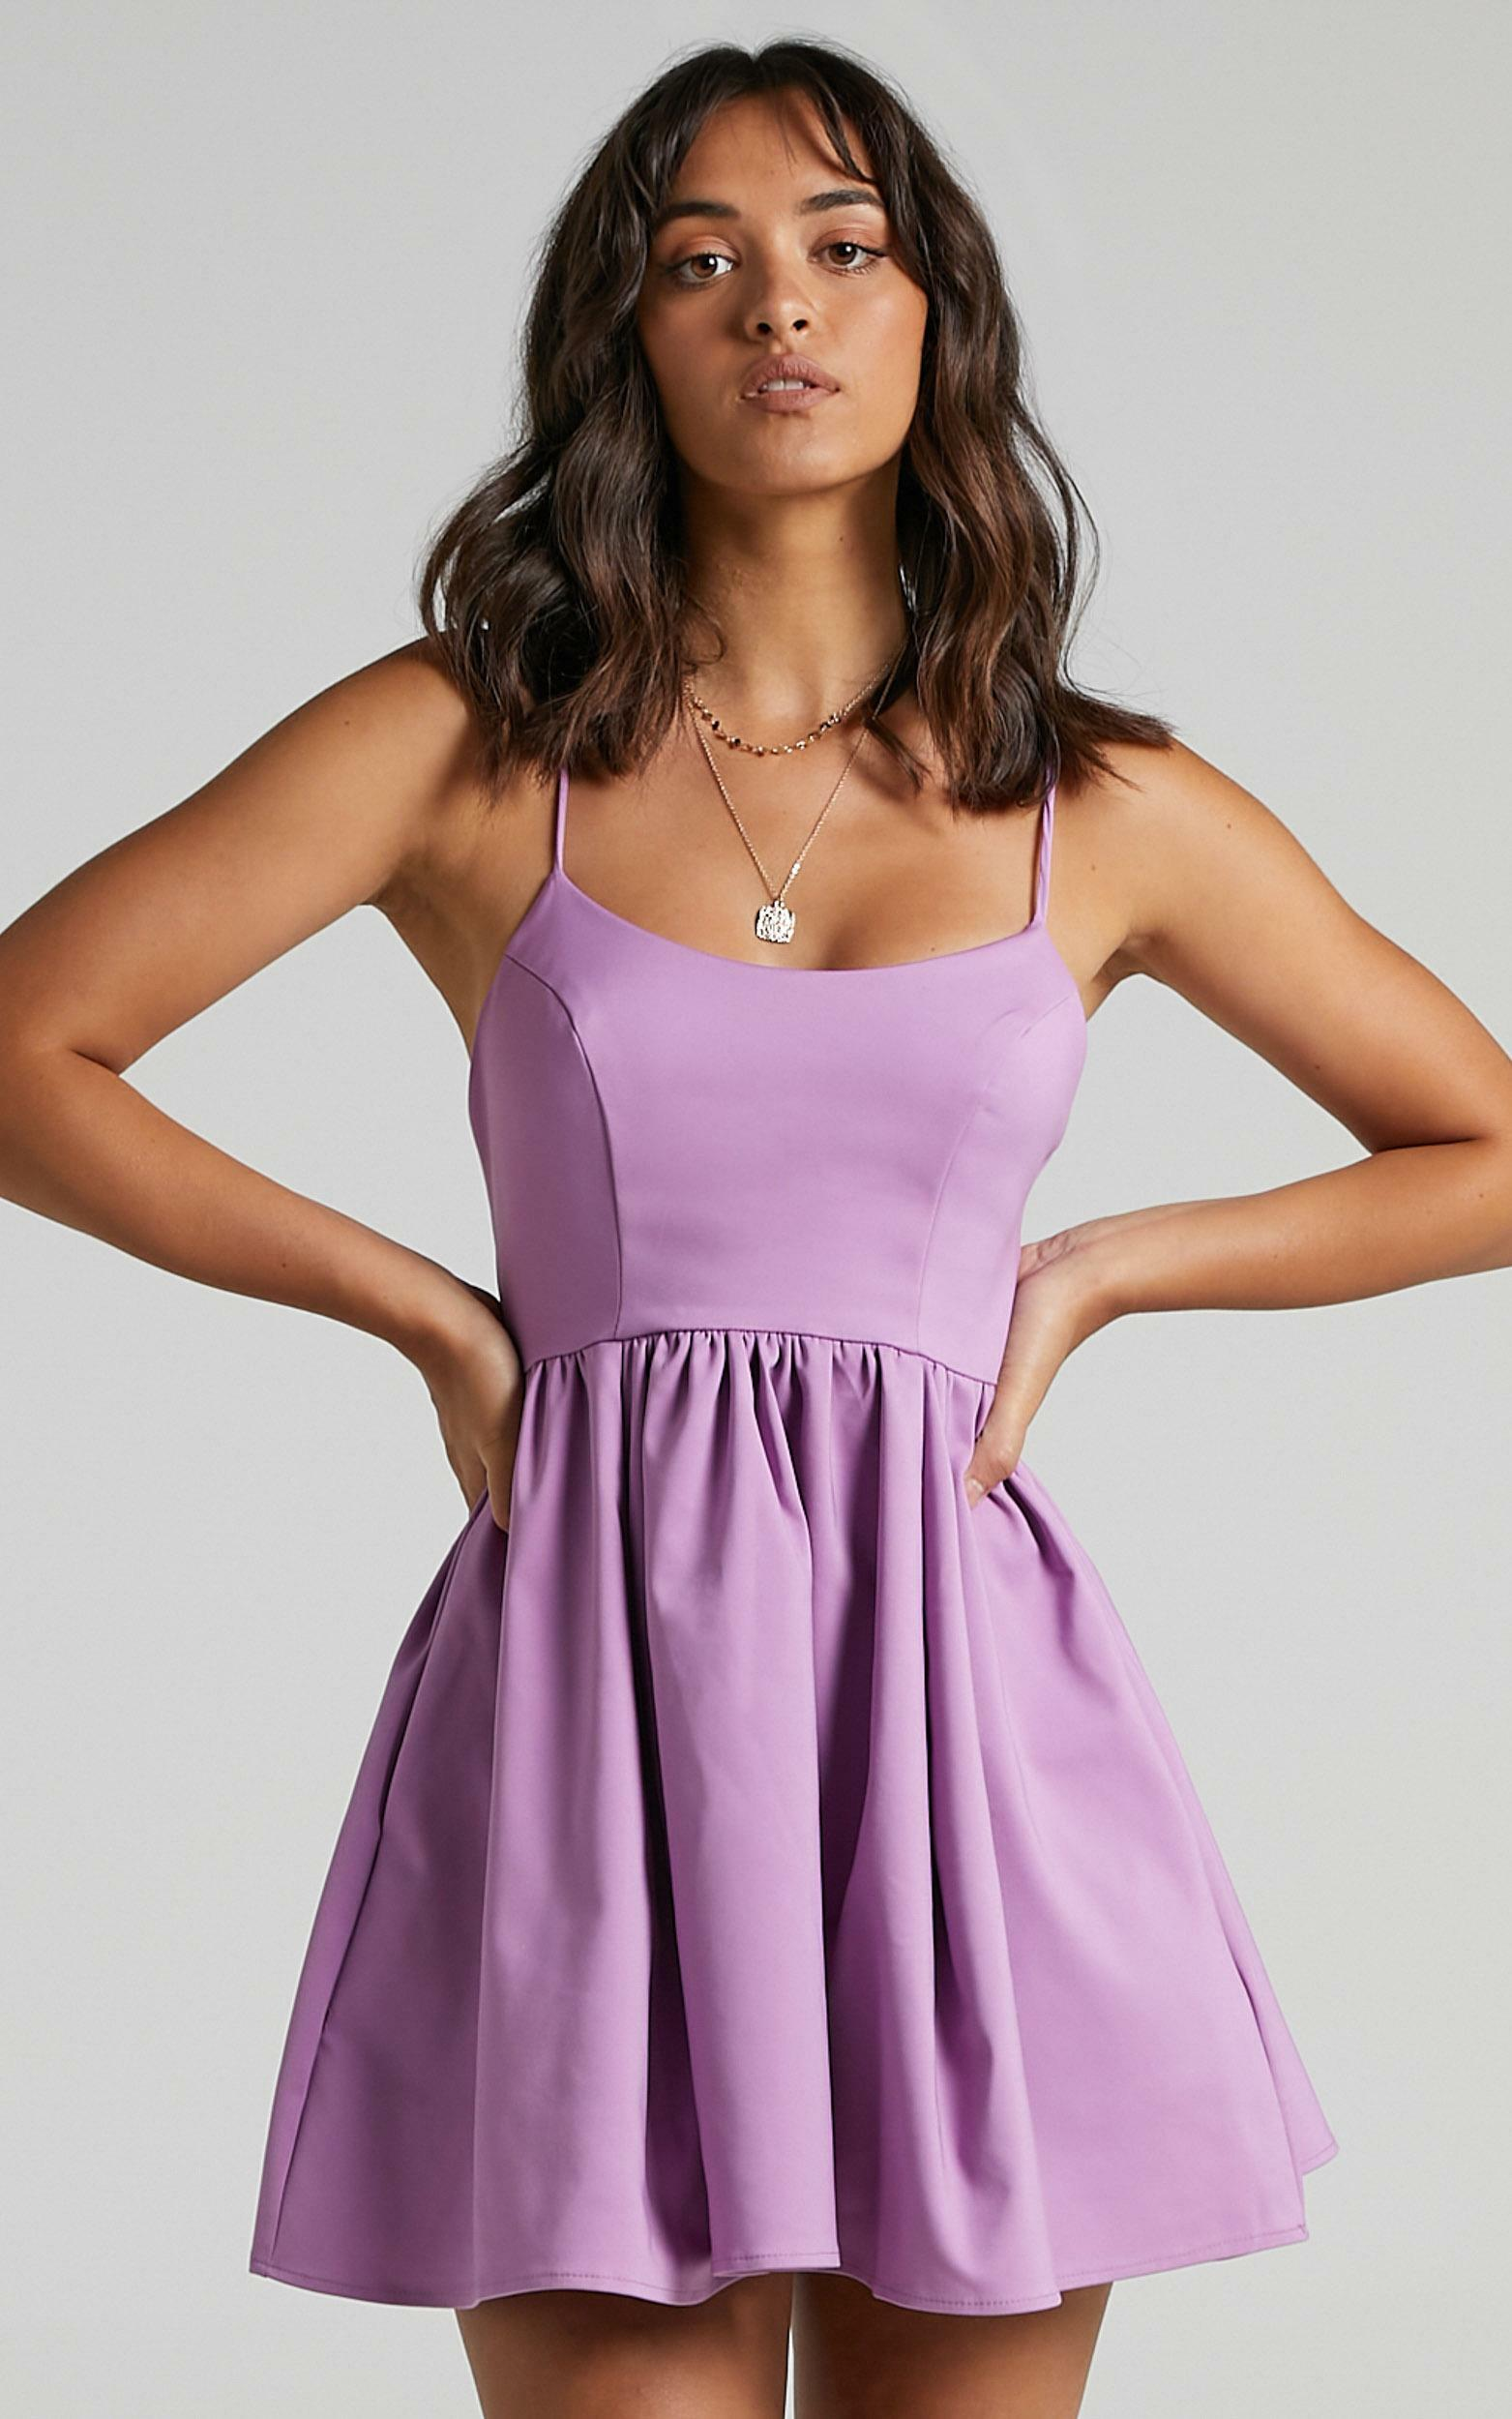 You Got Nothing To Prove Dress in Lilac - 06, PRP5, hi-res image number null